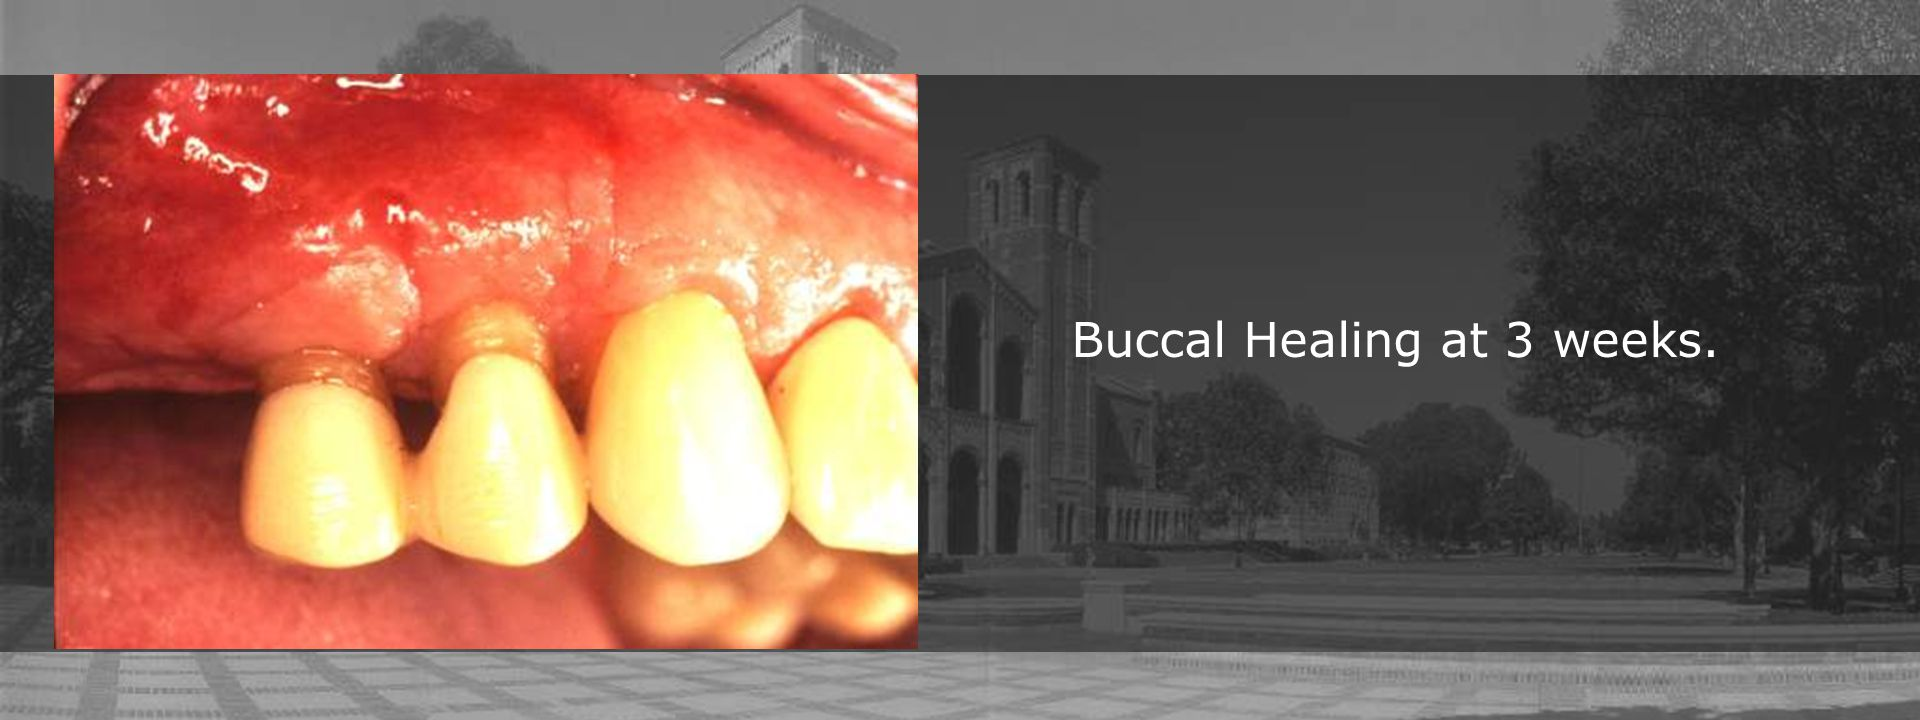 Buccal Healing at 3 weeks.